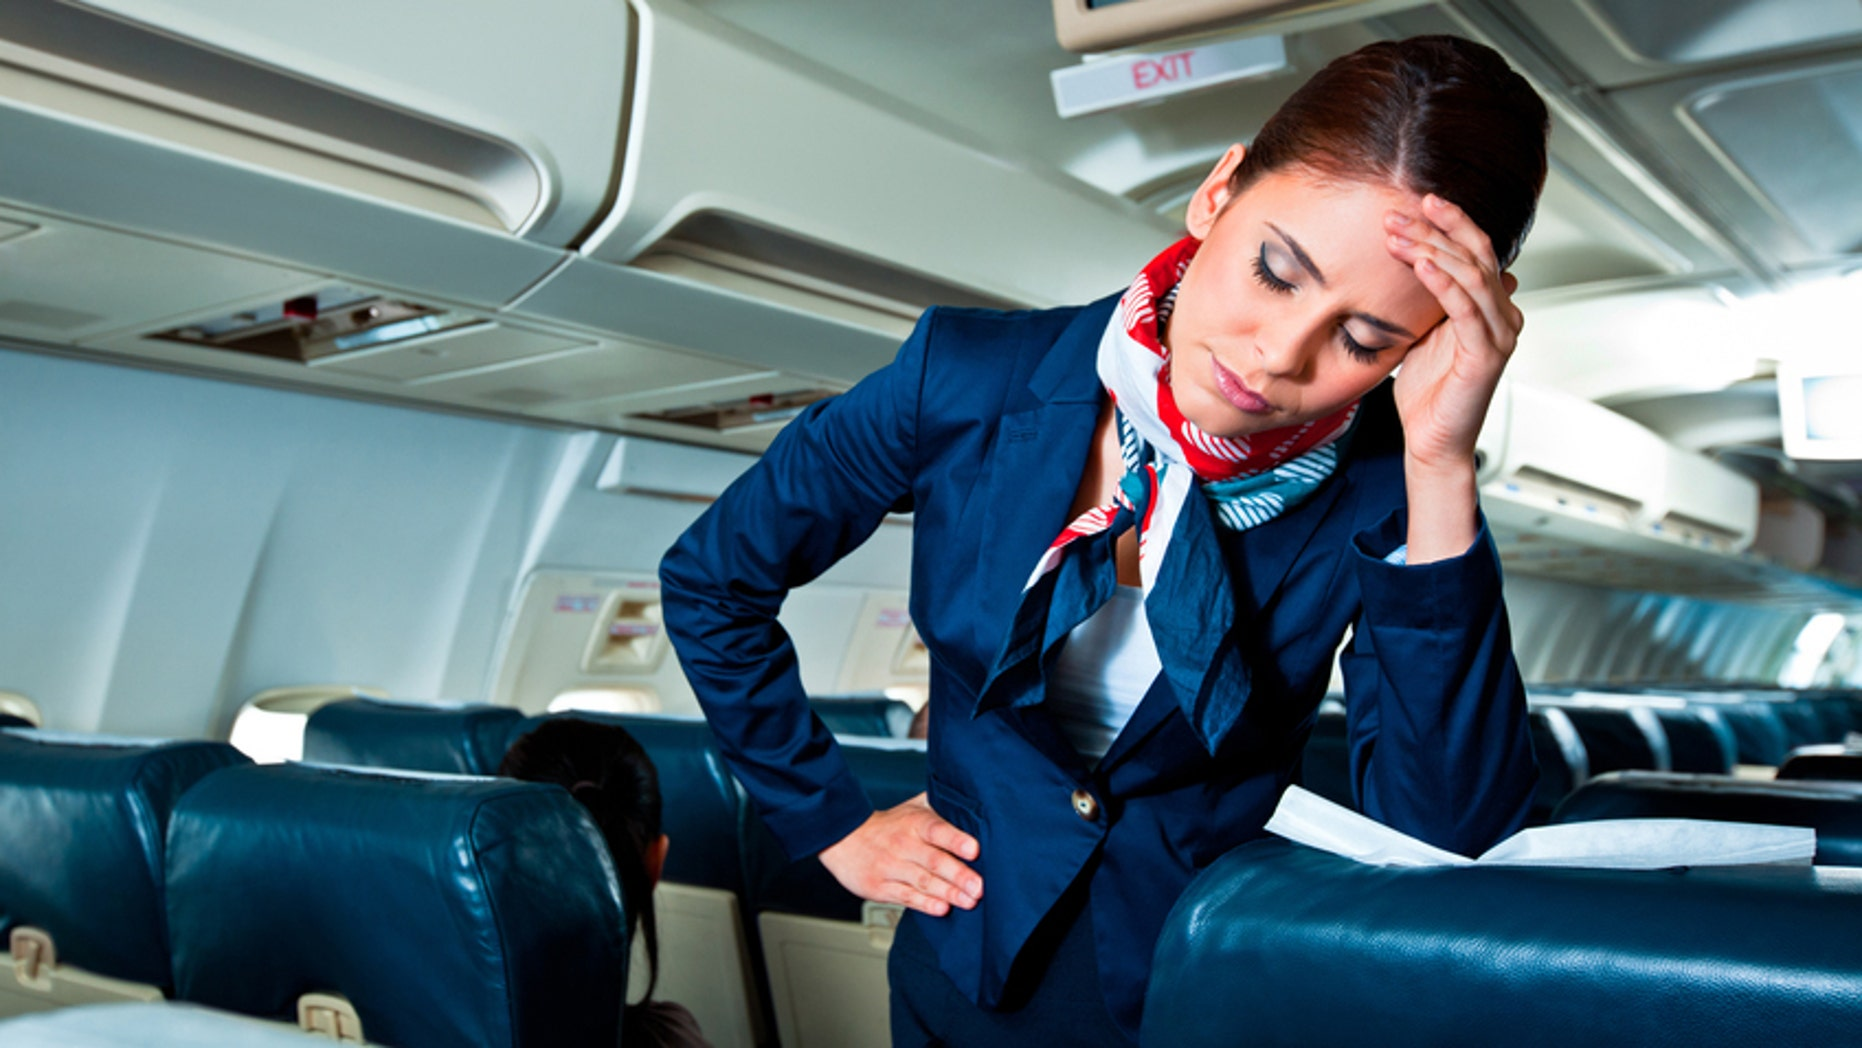 It's not easy flying the friendly skies. Here's why.